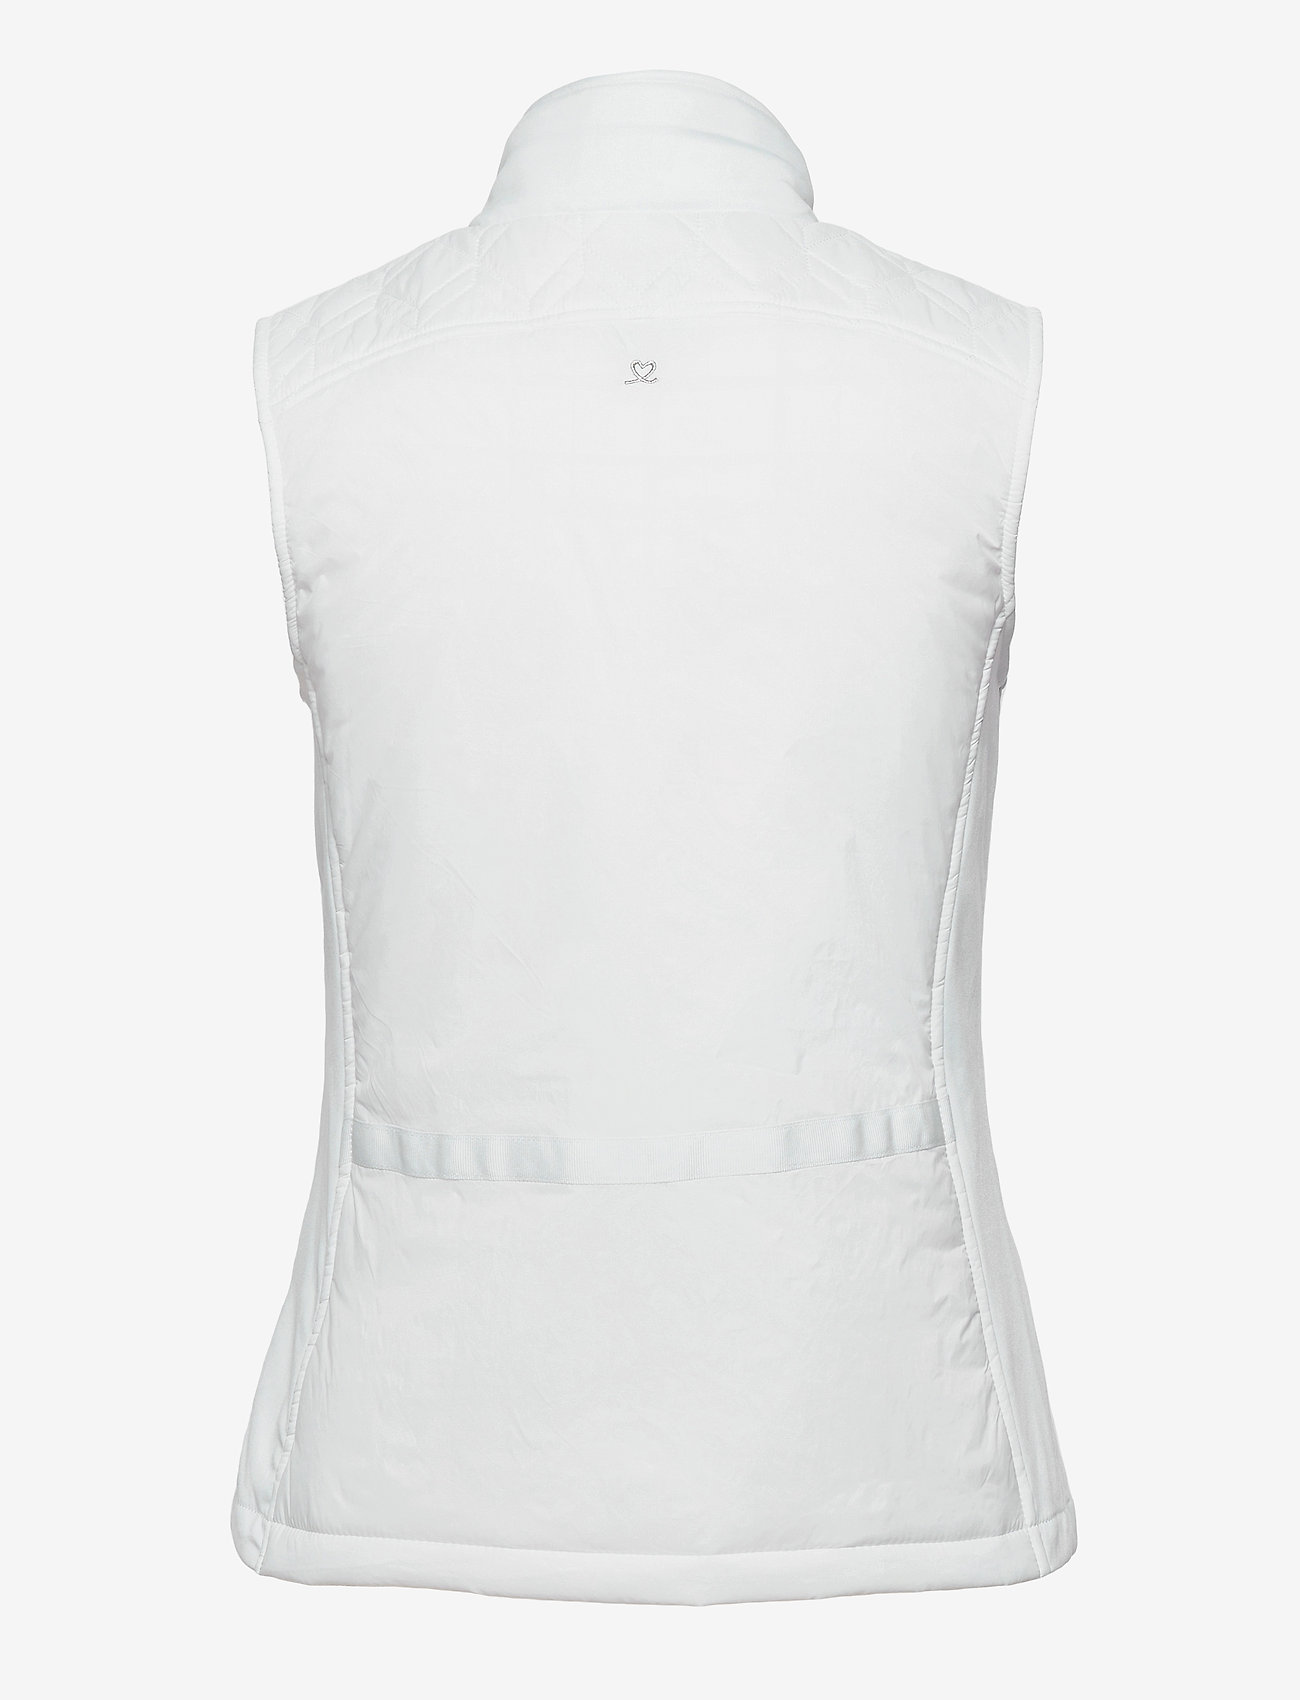 Daily Sports - EVEN VEST - puffer vests - white - 1